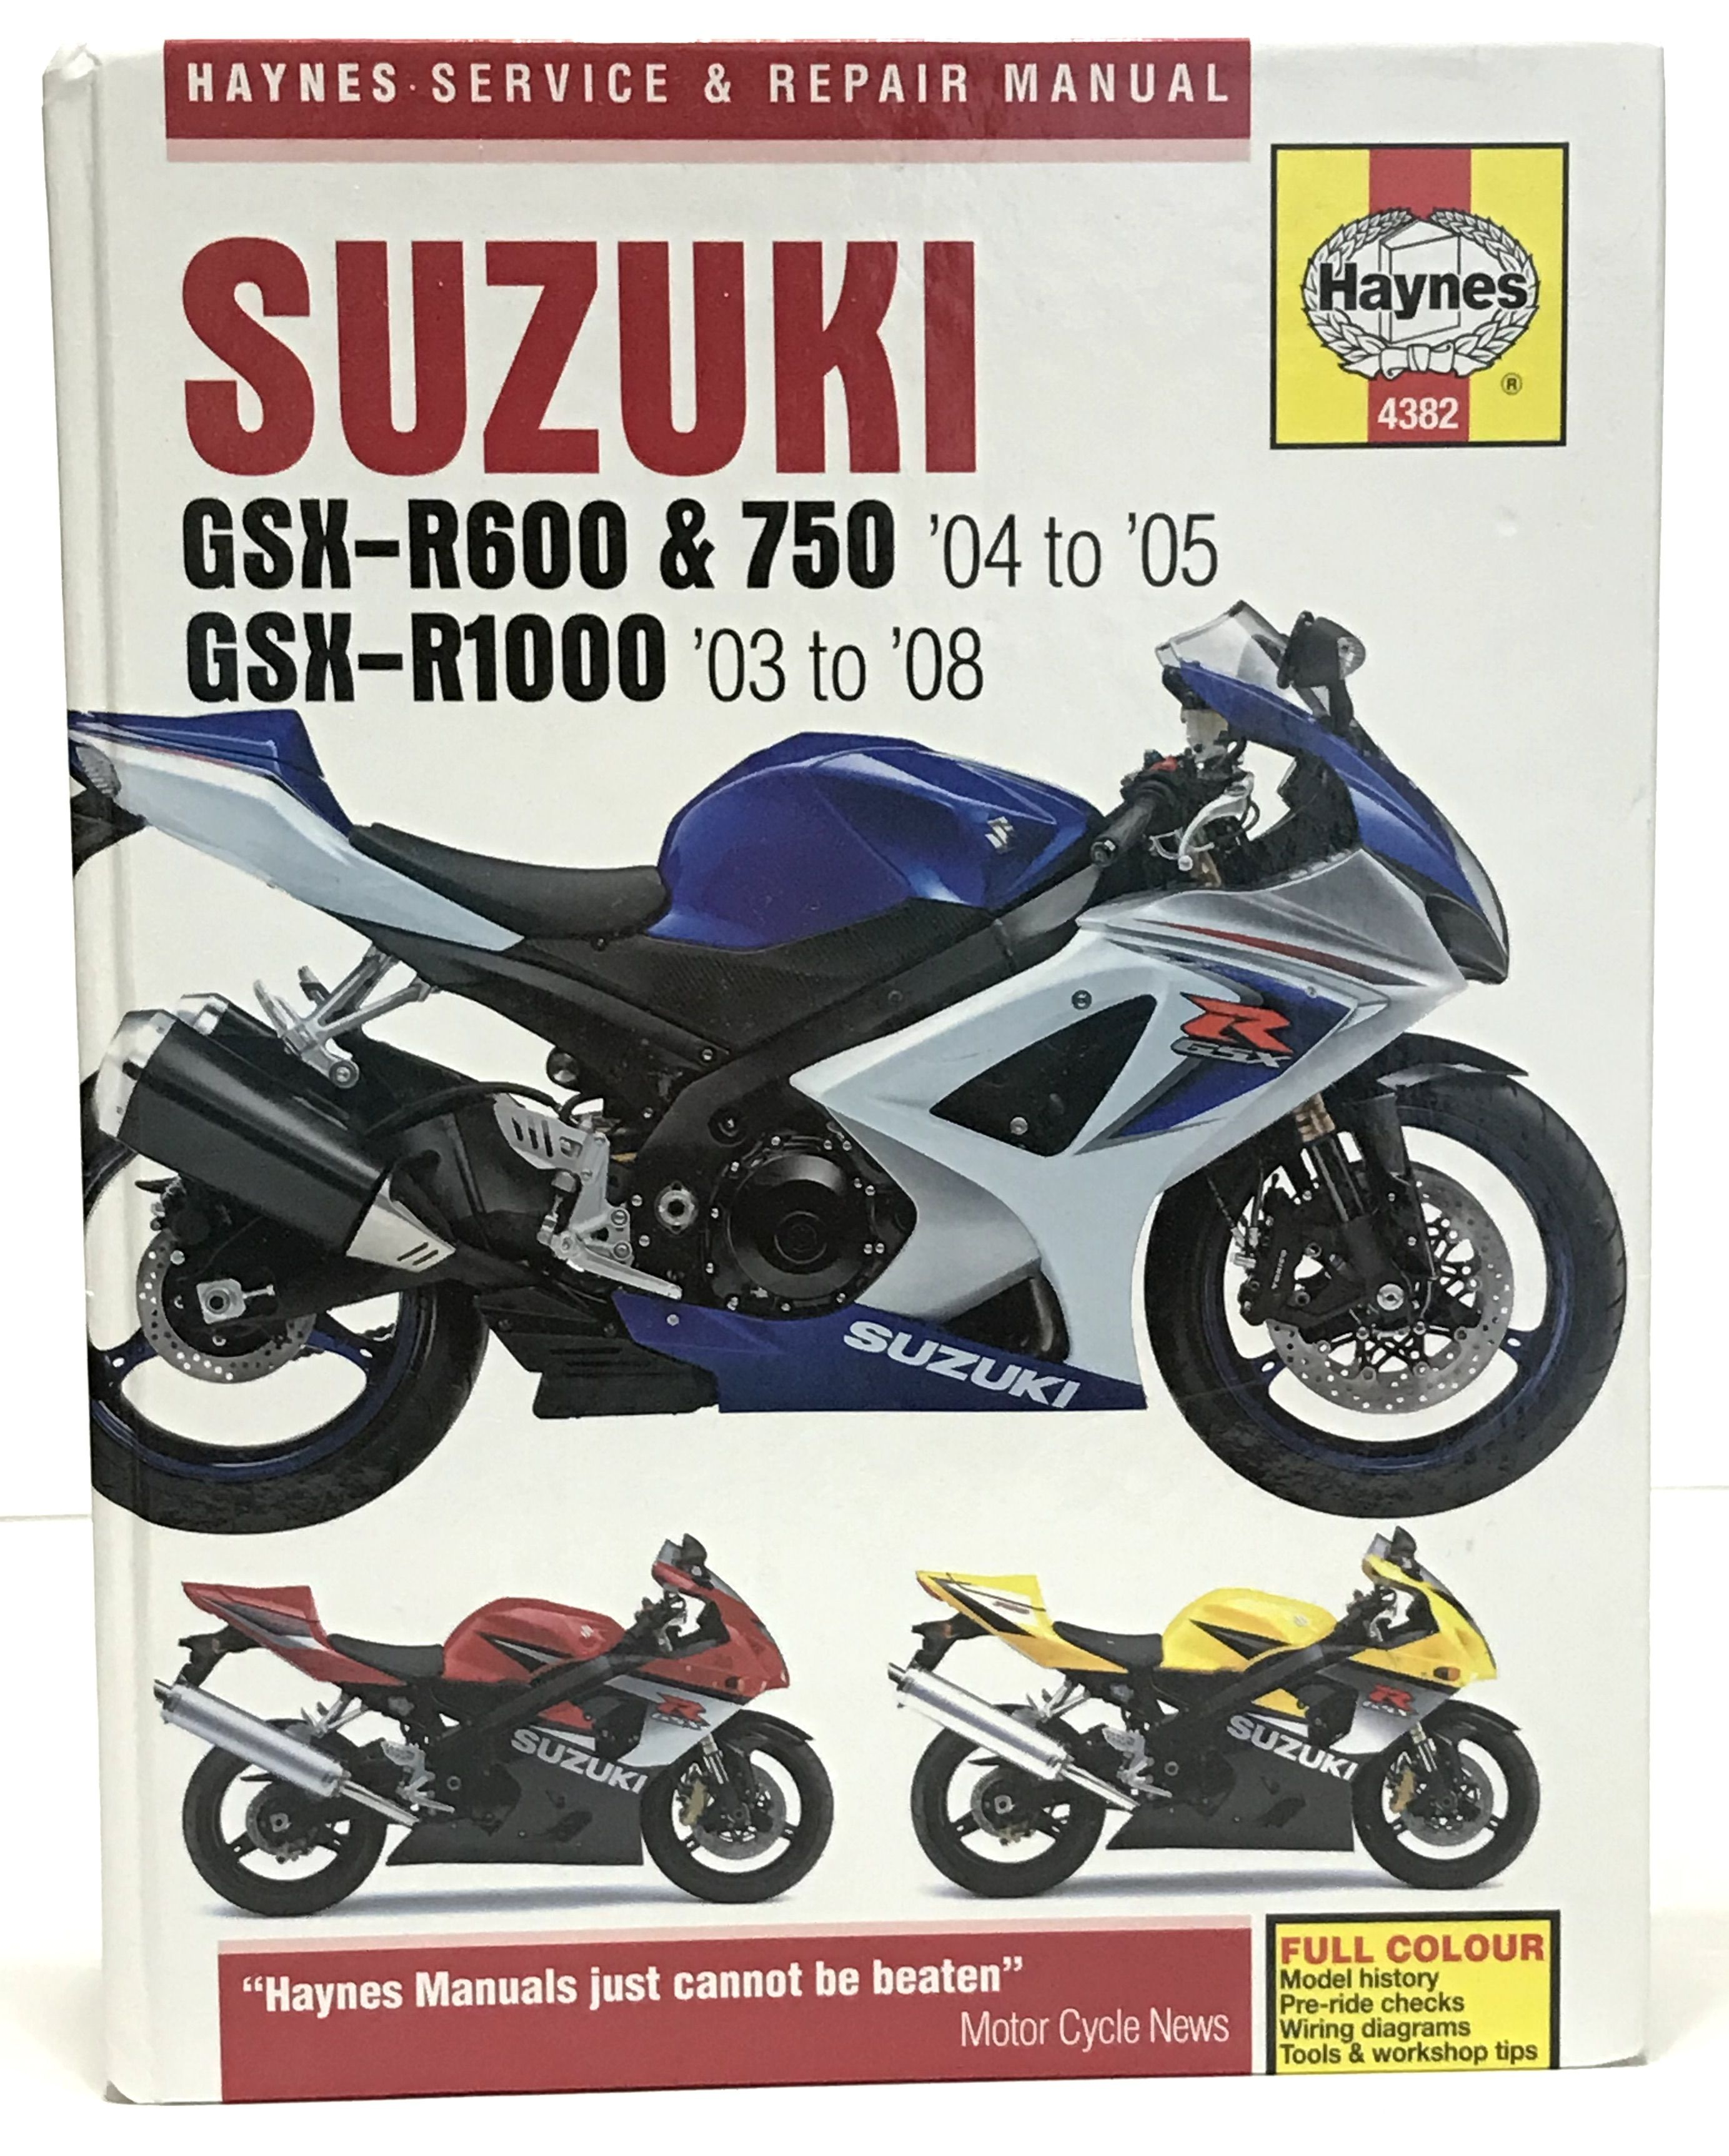 Haynes Workshop Manual Suzuki Gsx R 600 750 1000 2003 2008 Repair Motorcycle Suzuki Gsx Gsx Suzuki